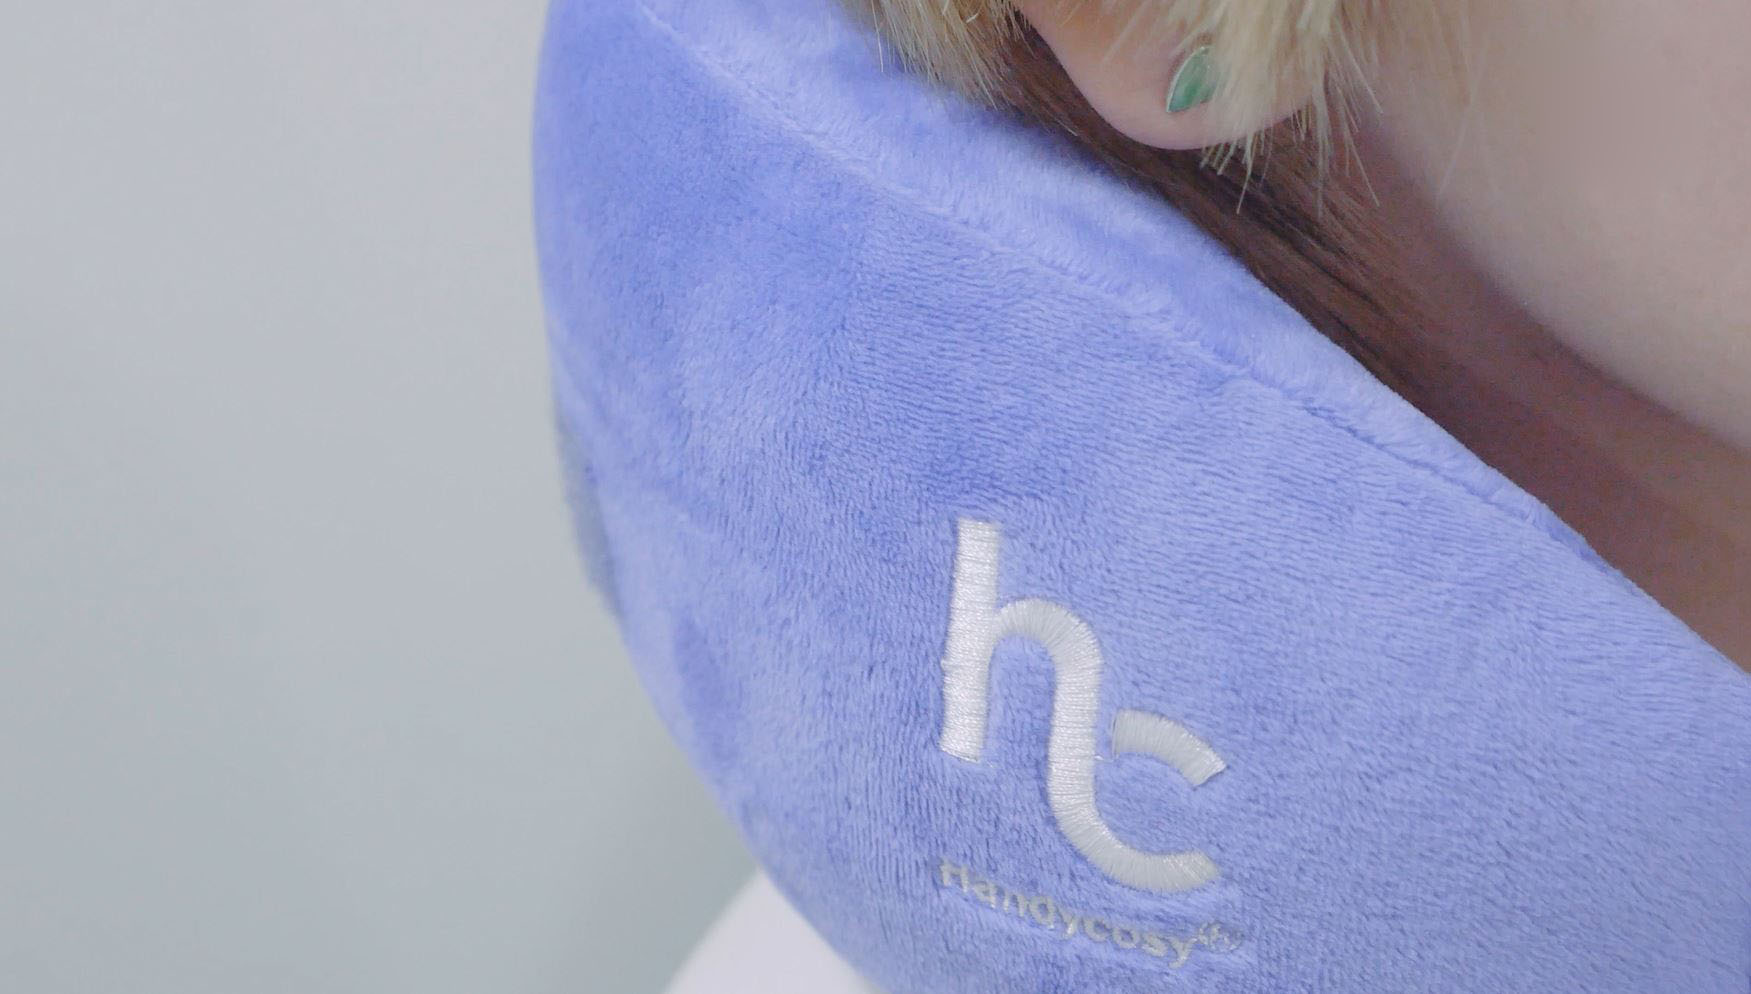 HANDYCOSY Compact Travel Pillow